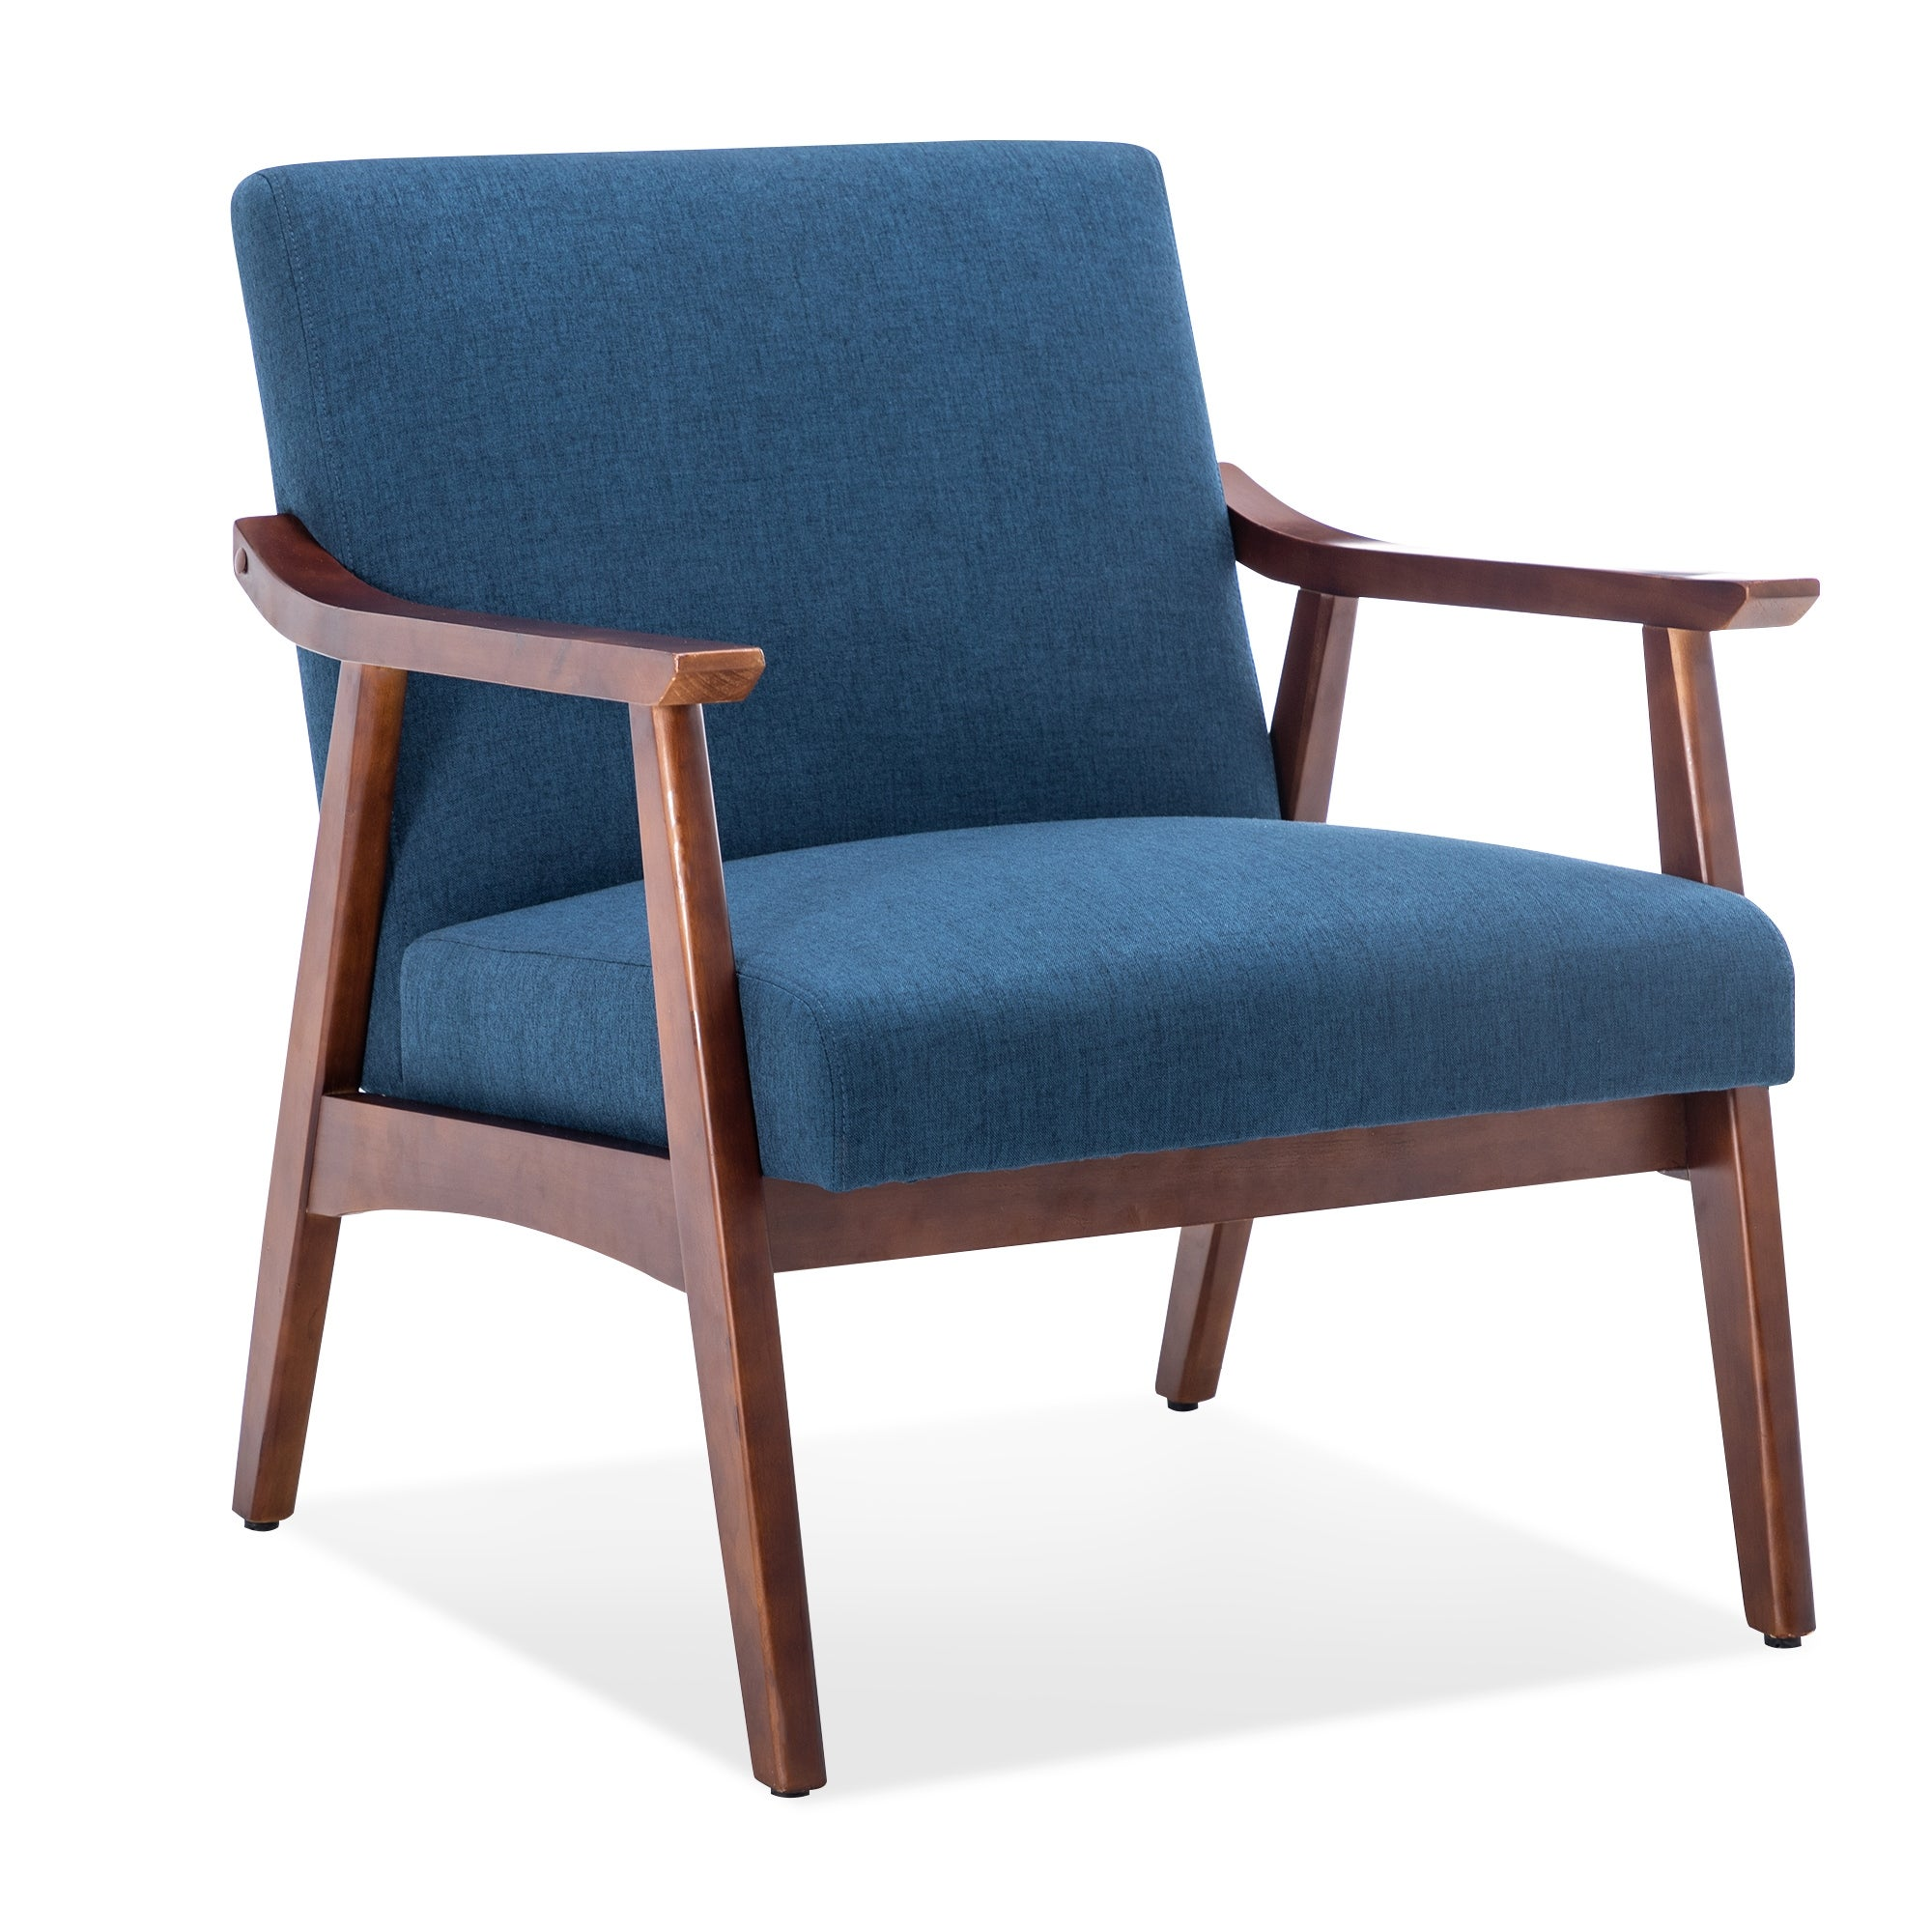 Picture of: Best Choice Products Linen Upholstered Modern Mid Century Tufted Accent Chair For Living Room Dark Blue Bedroom Pinnacleoilandgas Com